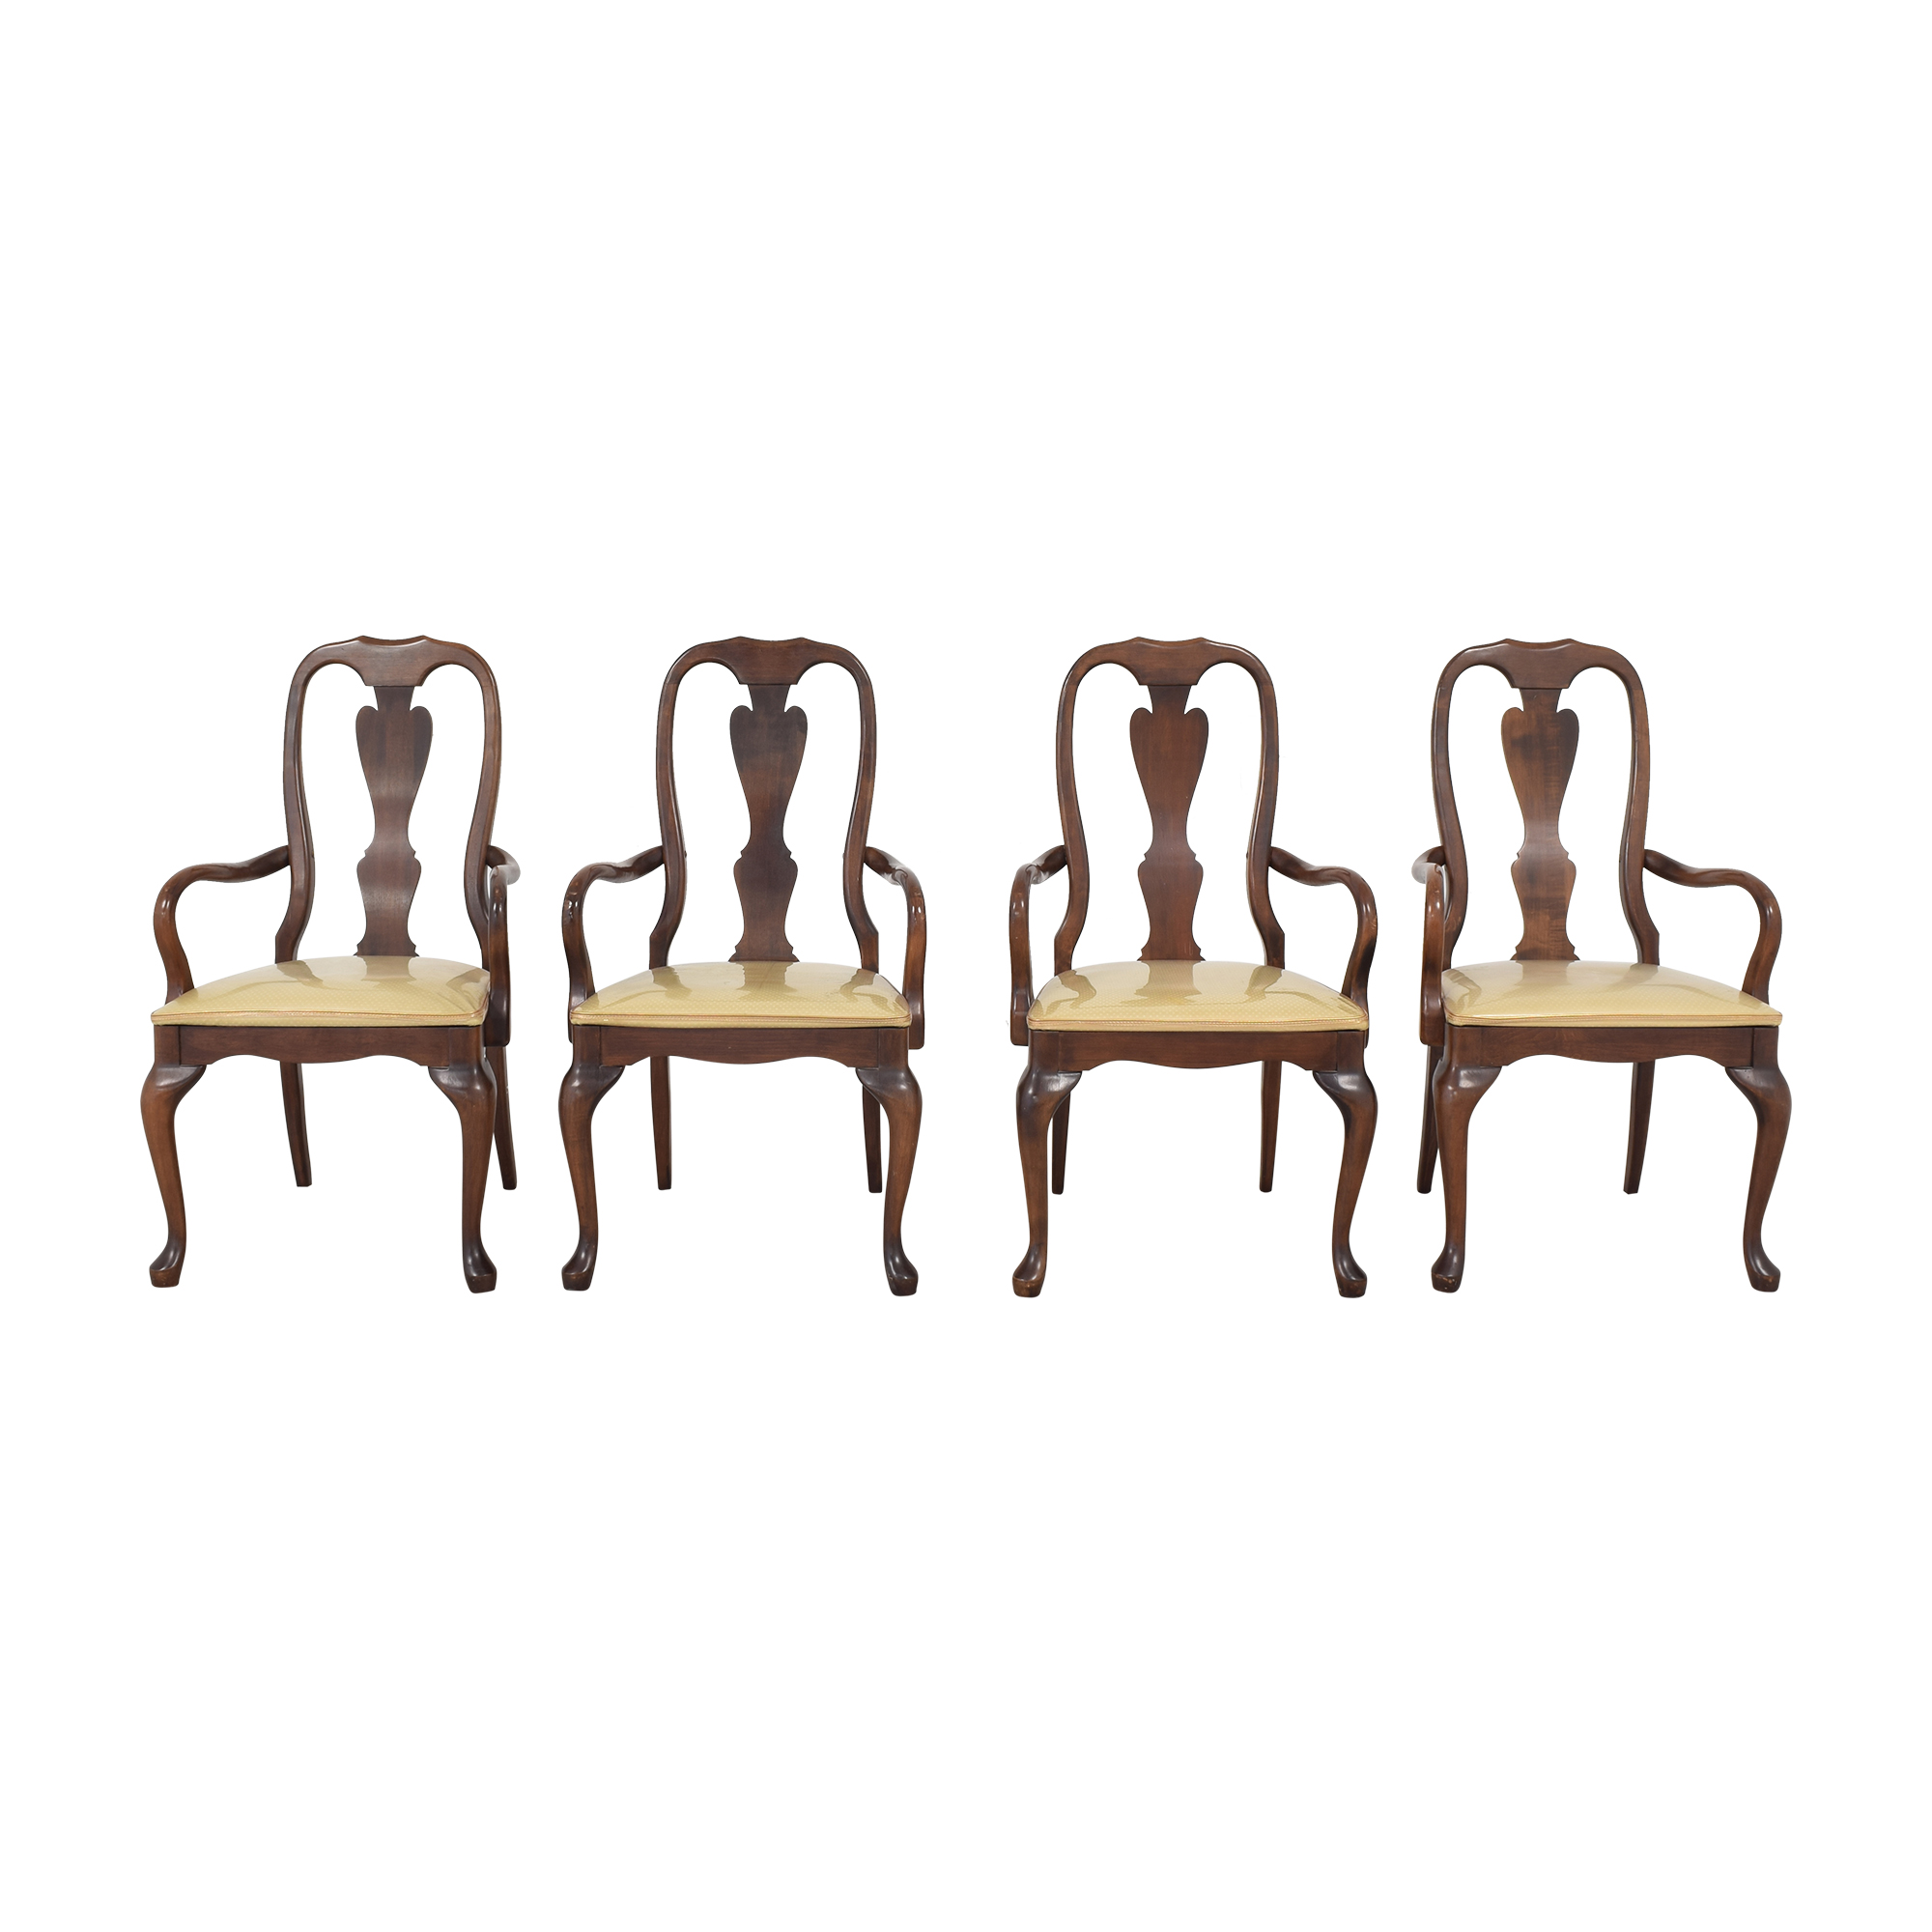 Crawford Furniture Crawford Furniture Dining Chairs discount